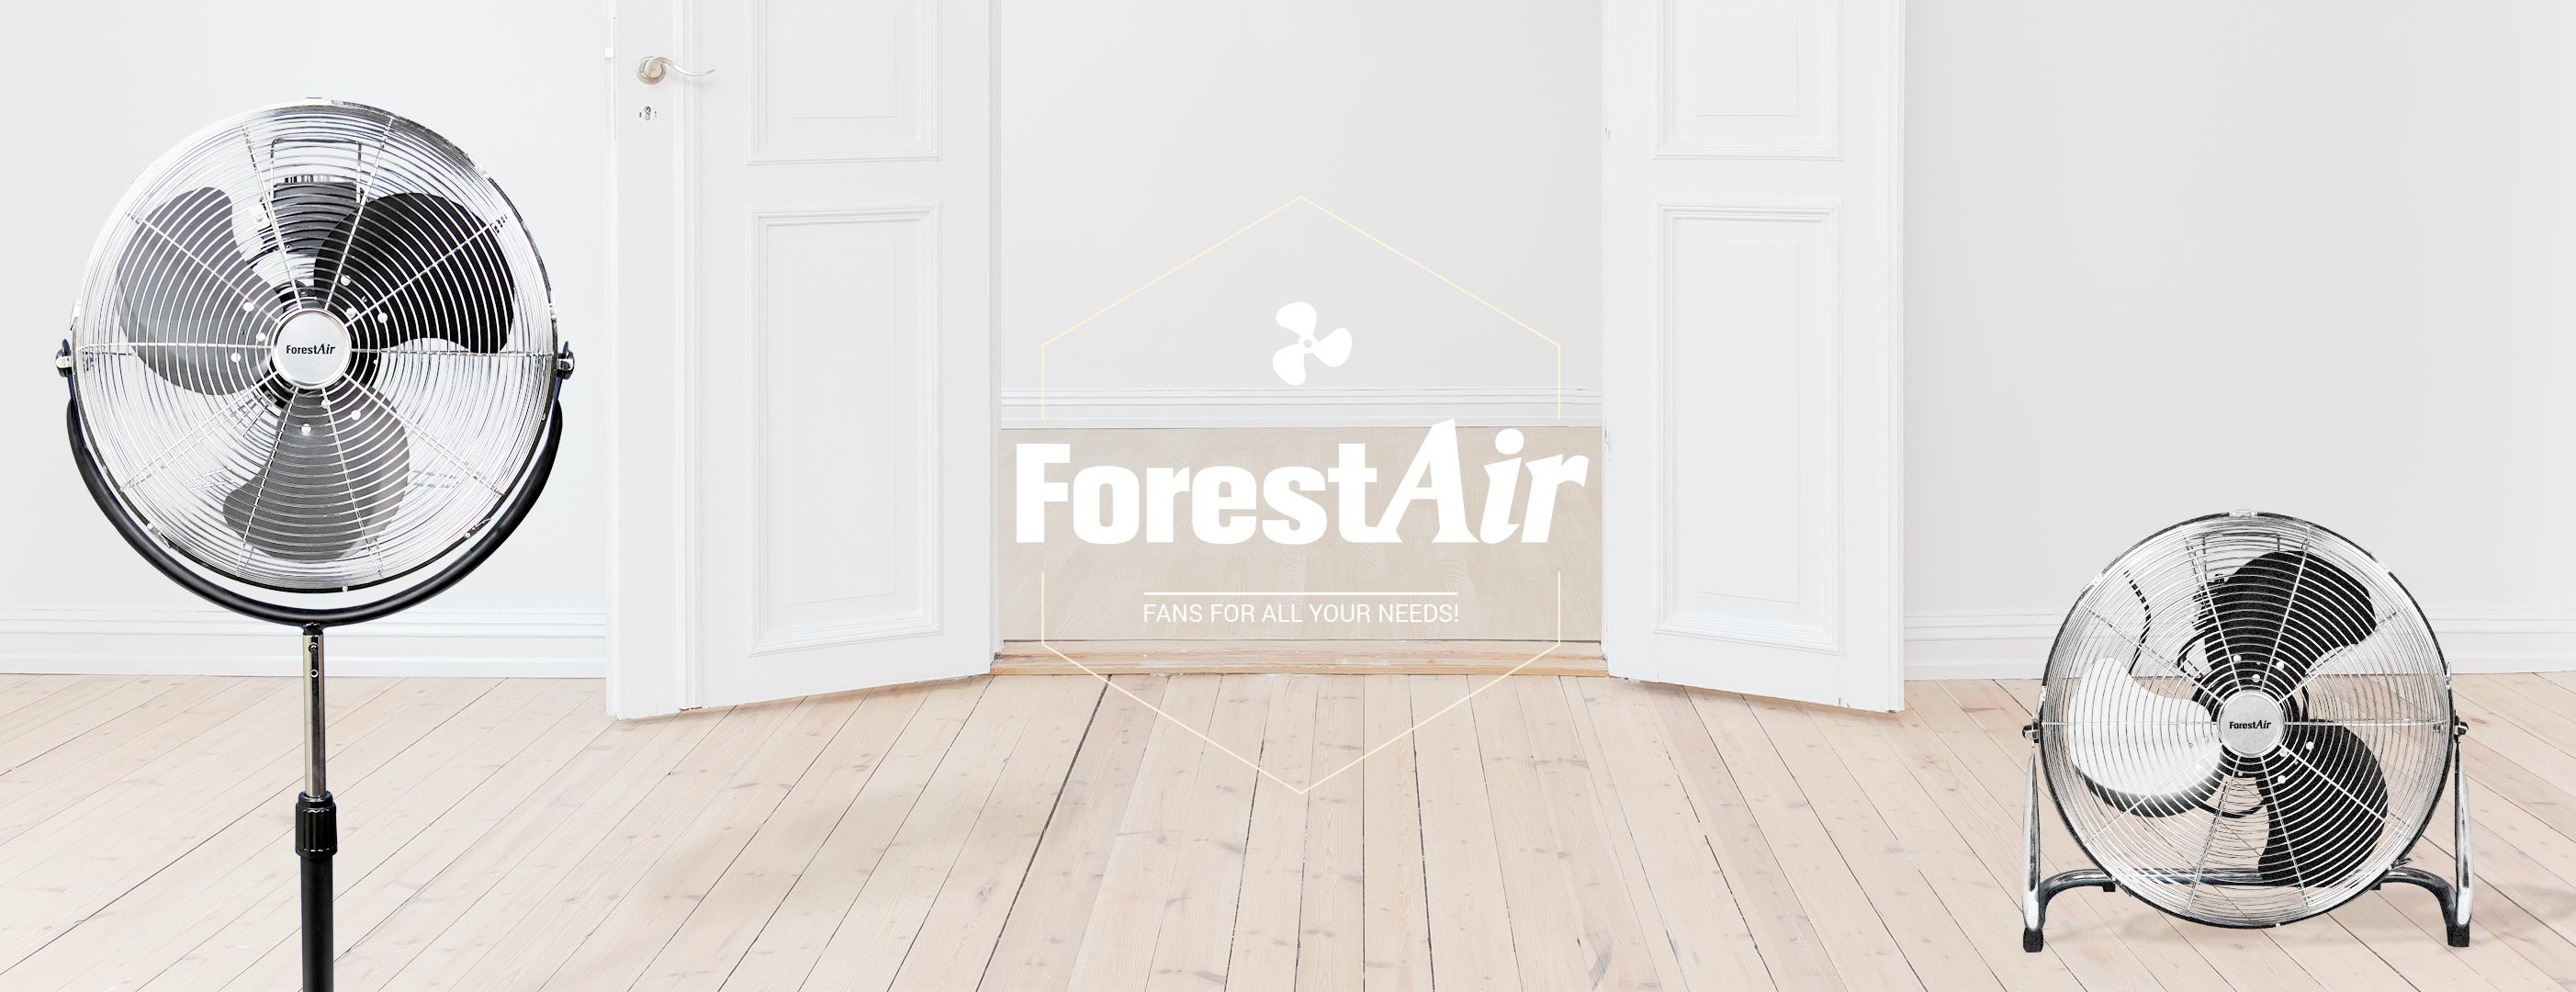 Banner Vent Forestair EN